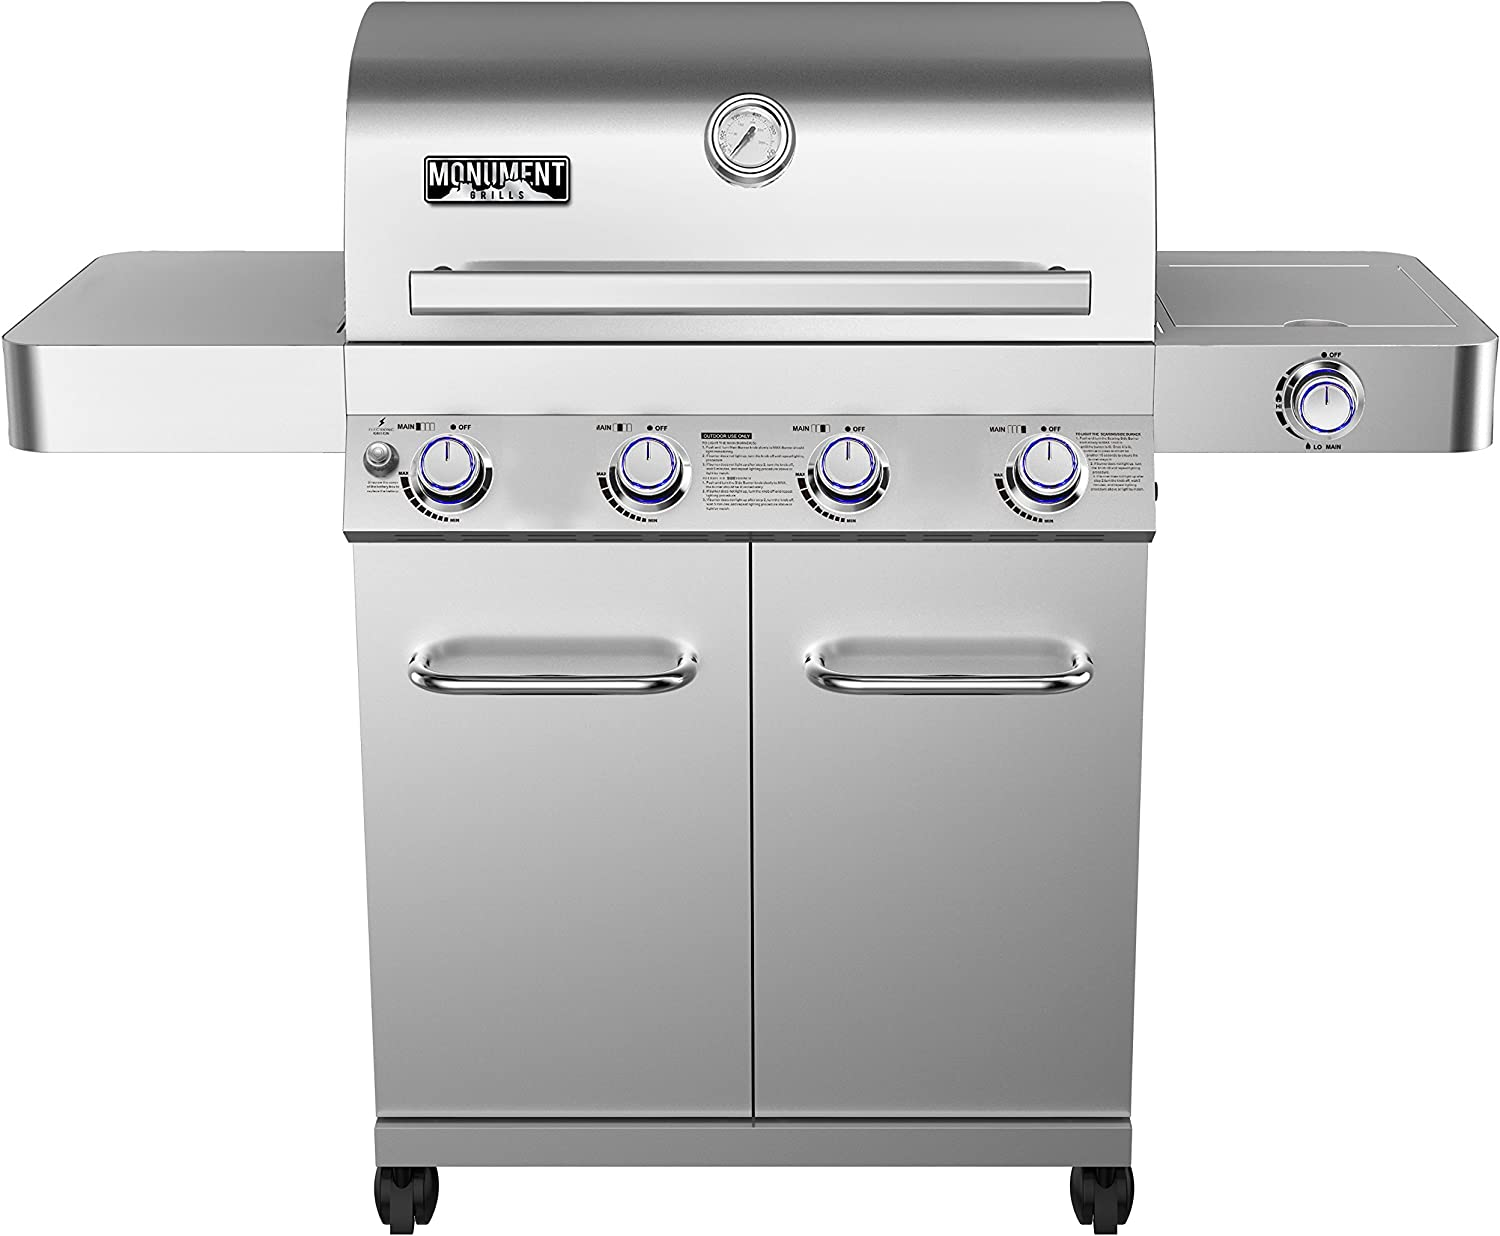 17842 Stainless Steel 4 Burner Propane with Rotisserie